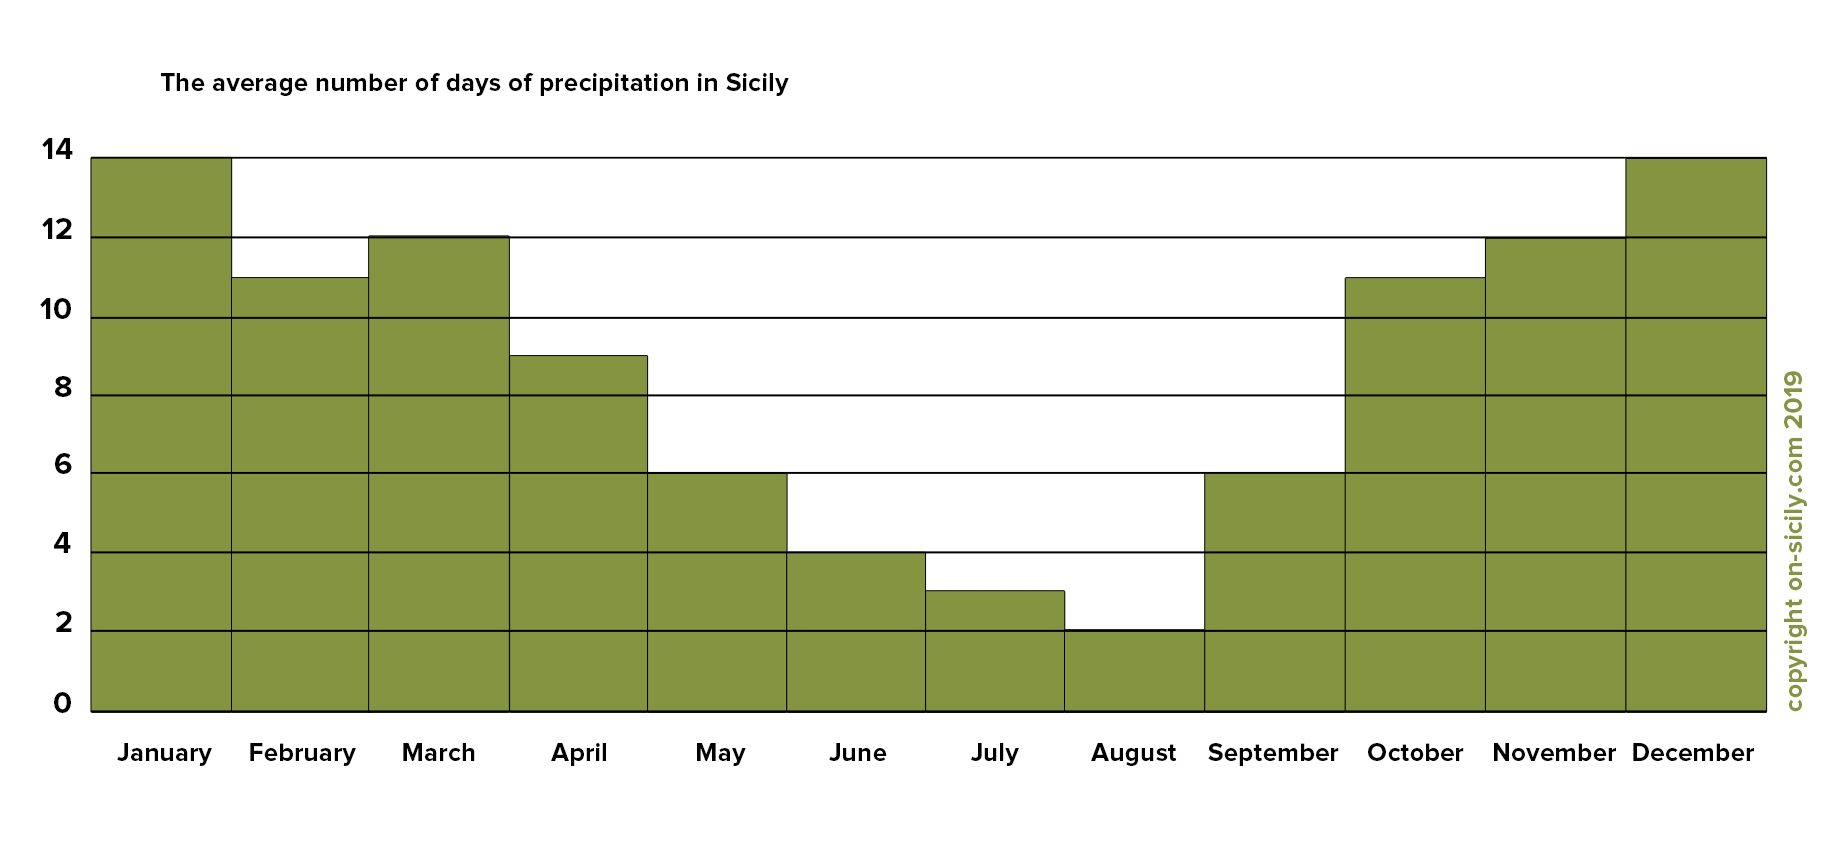 The average number of days of precipitation in Sicily